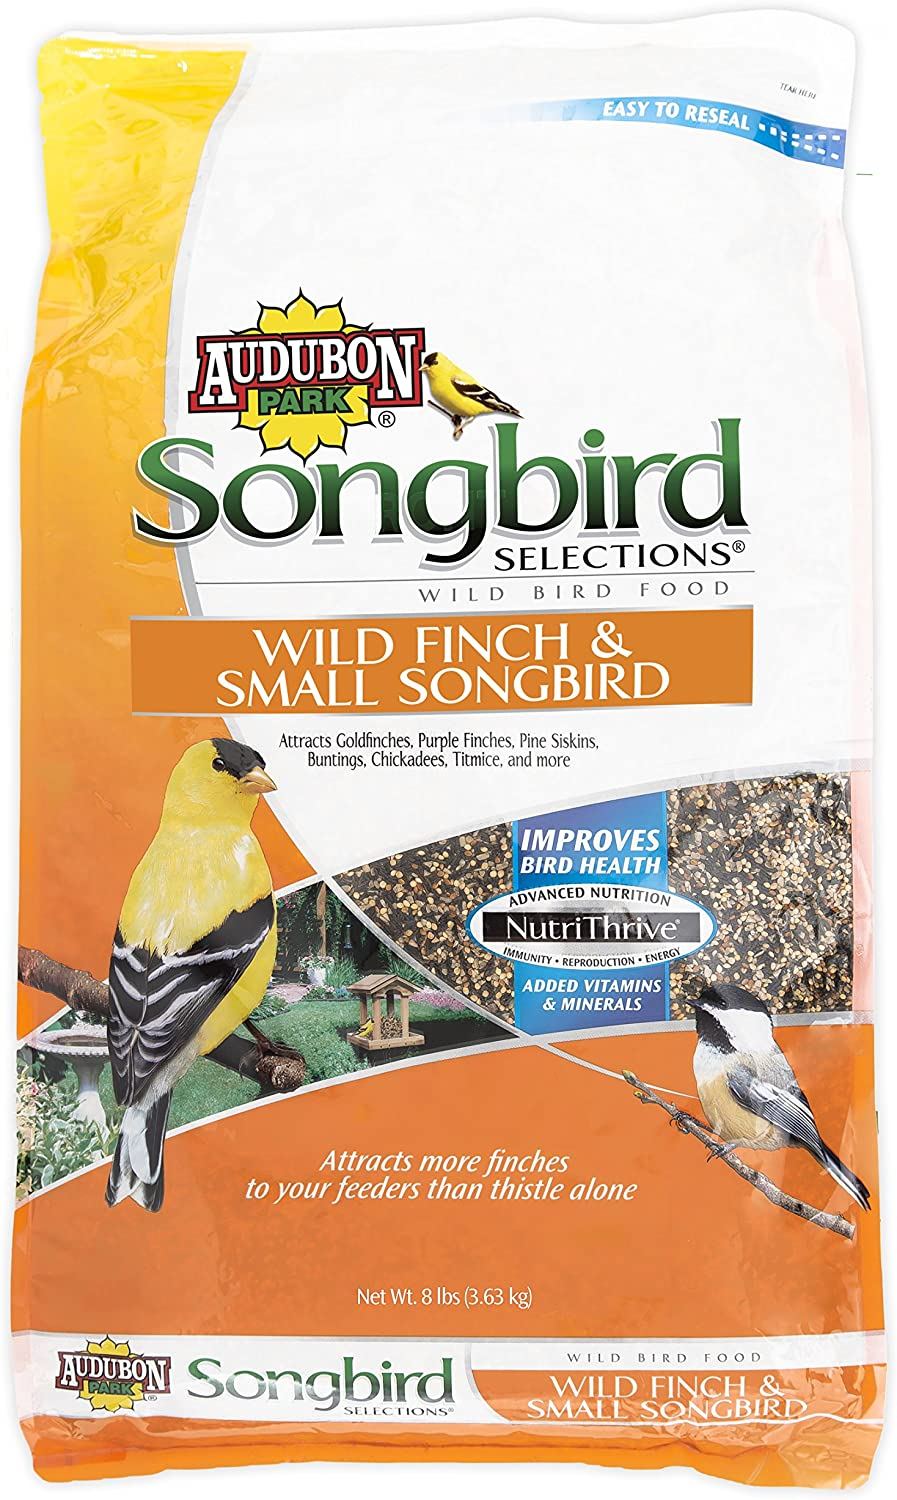 Audubon Park Songbird Selections Pound Selections 11977 Wild Finch and Small Songbird Seed Blend, 8